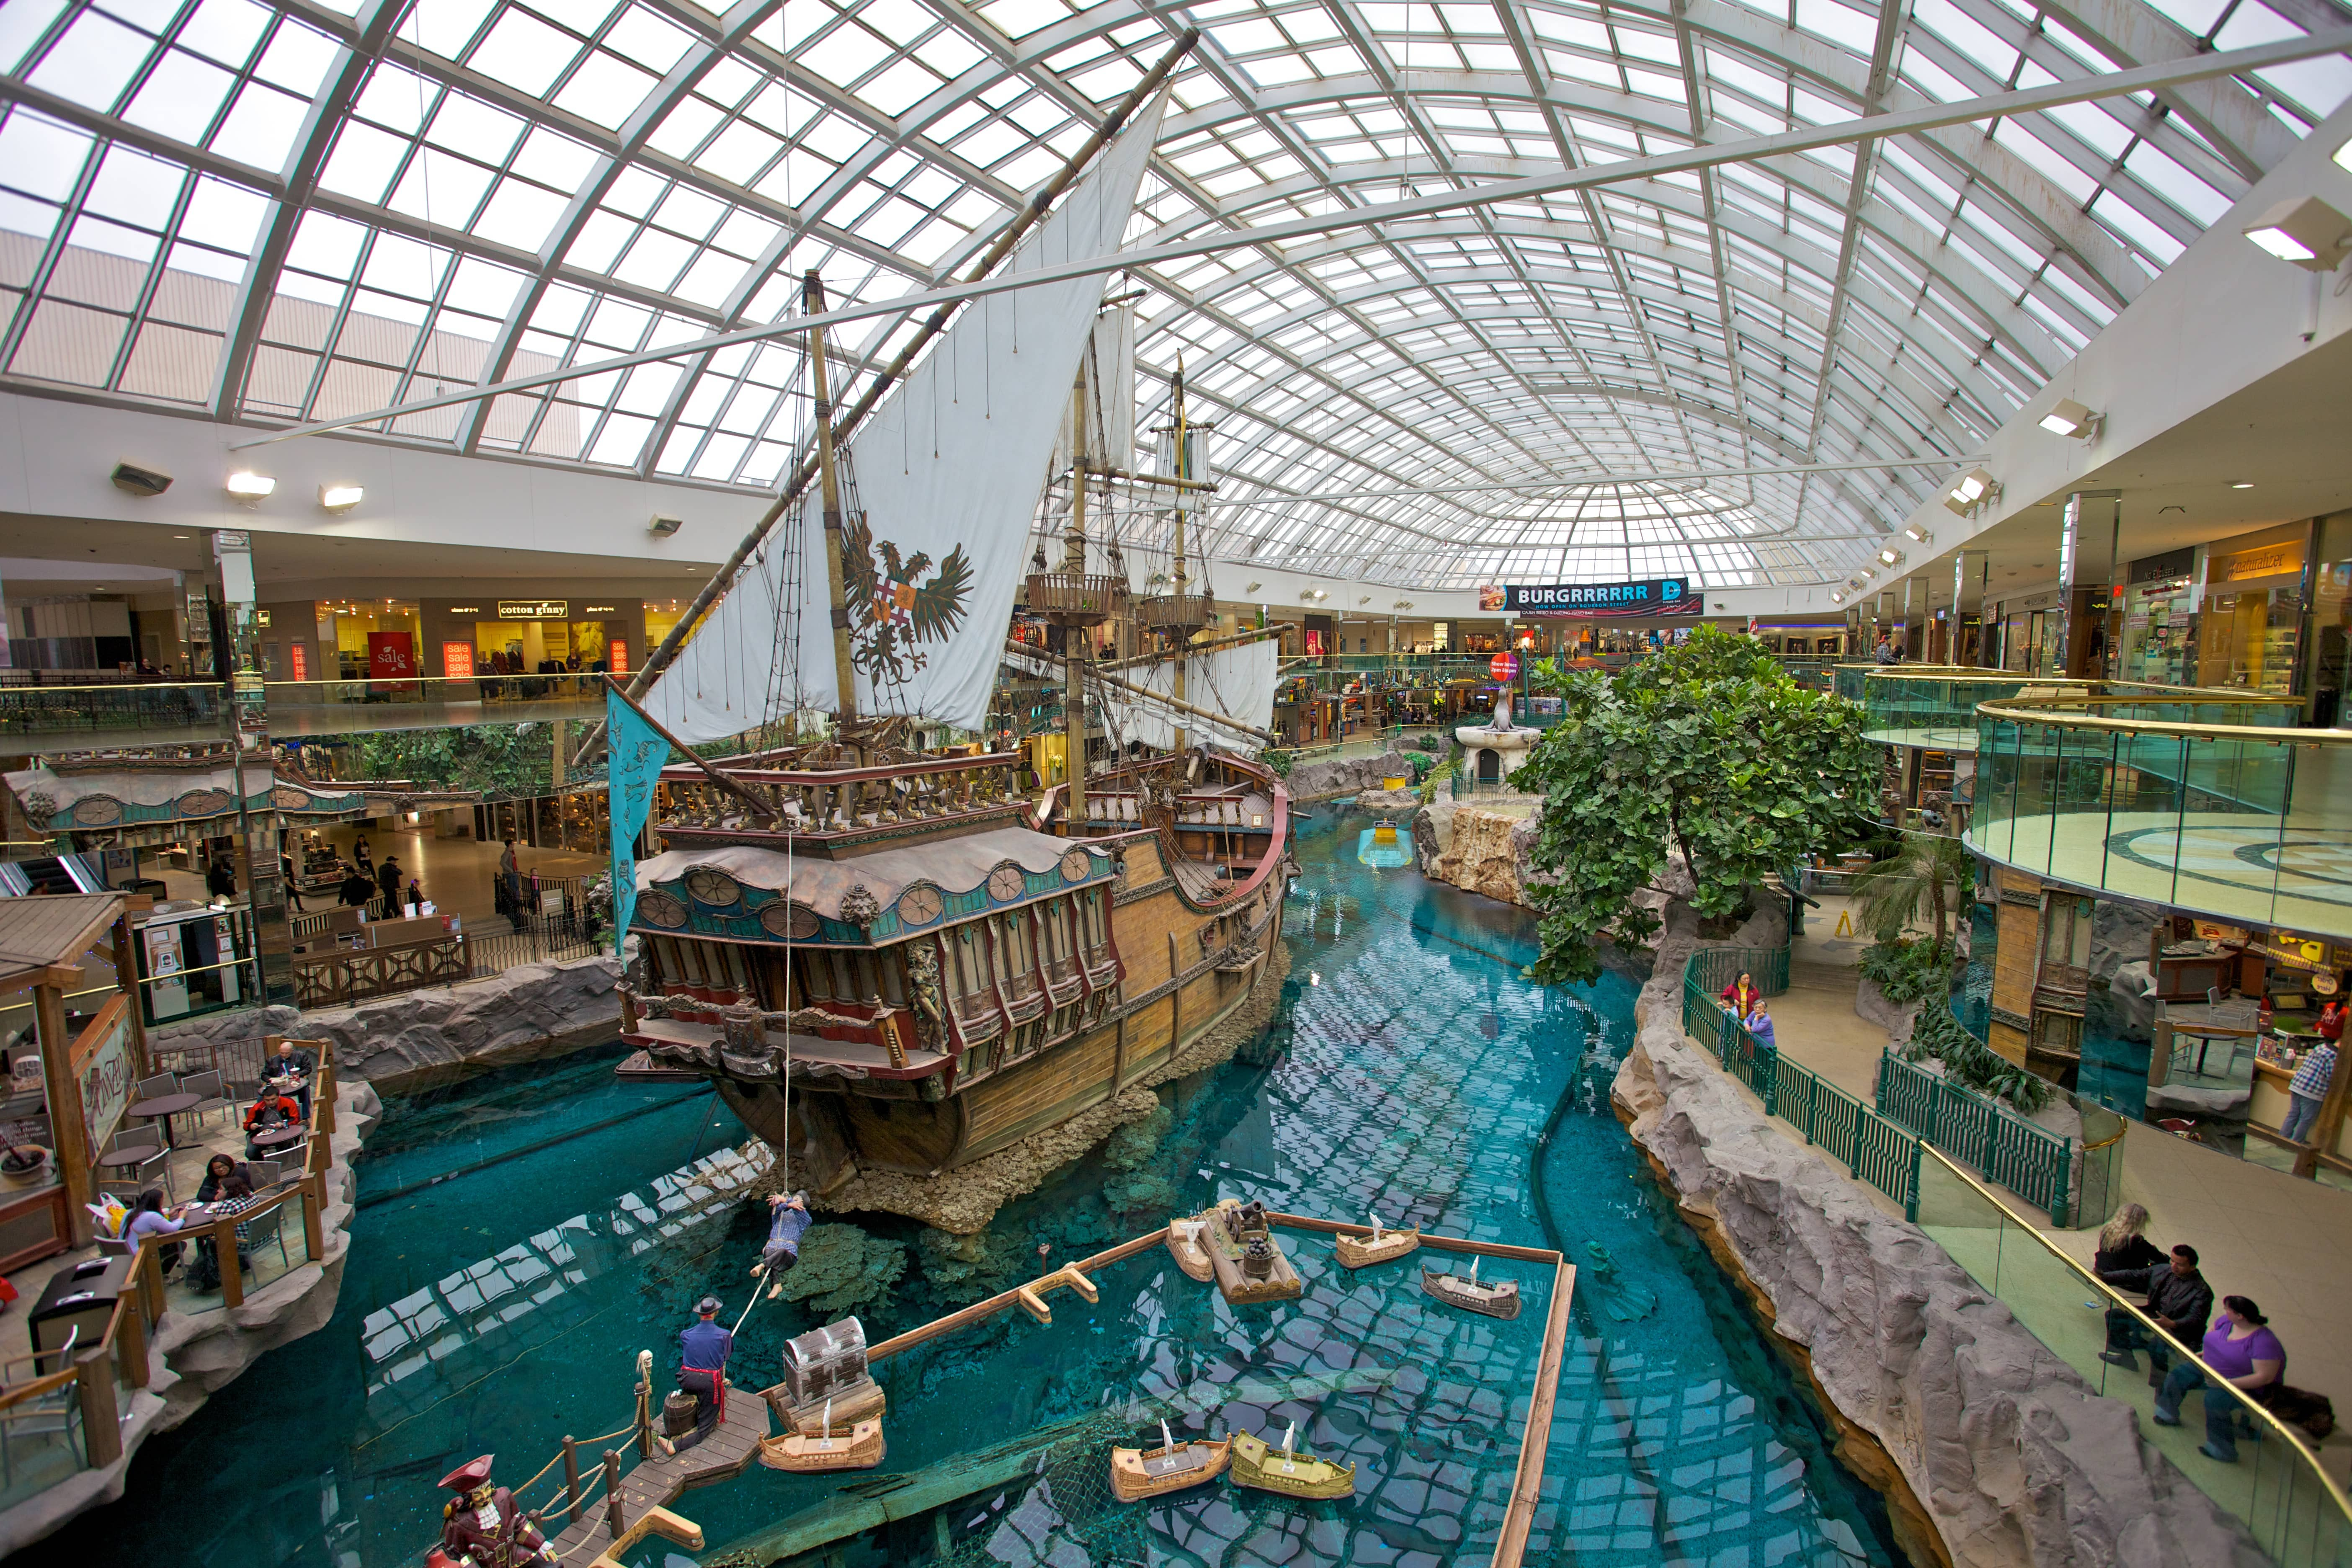 View overlooking a pirate ship ride in the middle of shops and restaurants at the West Edmonton Mall